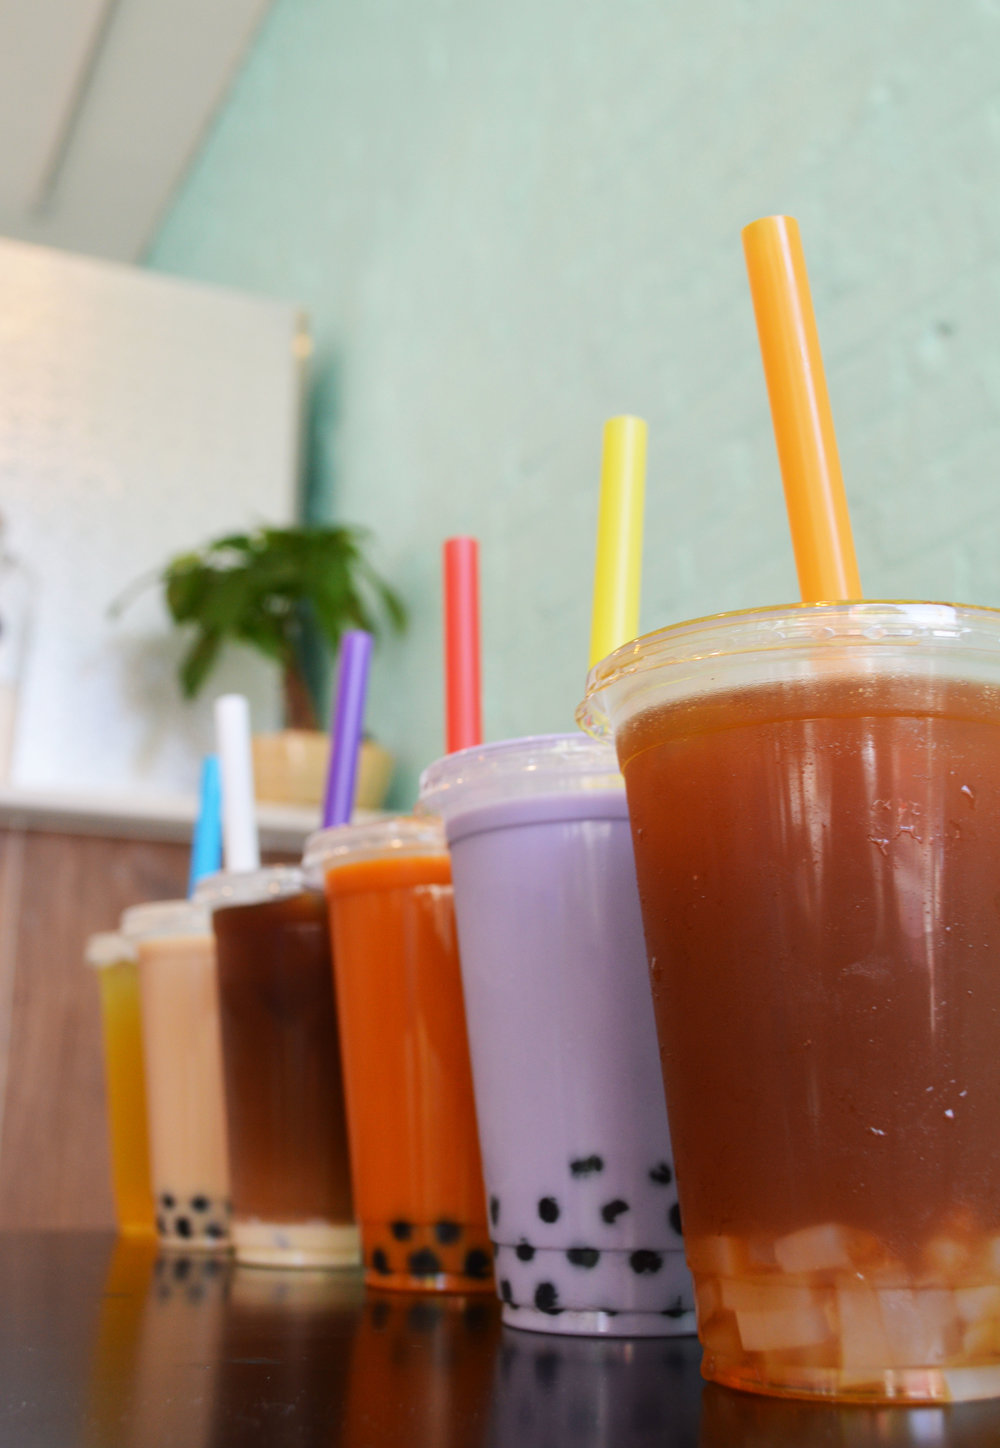 Our Bubble Teas